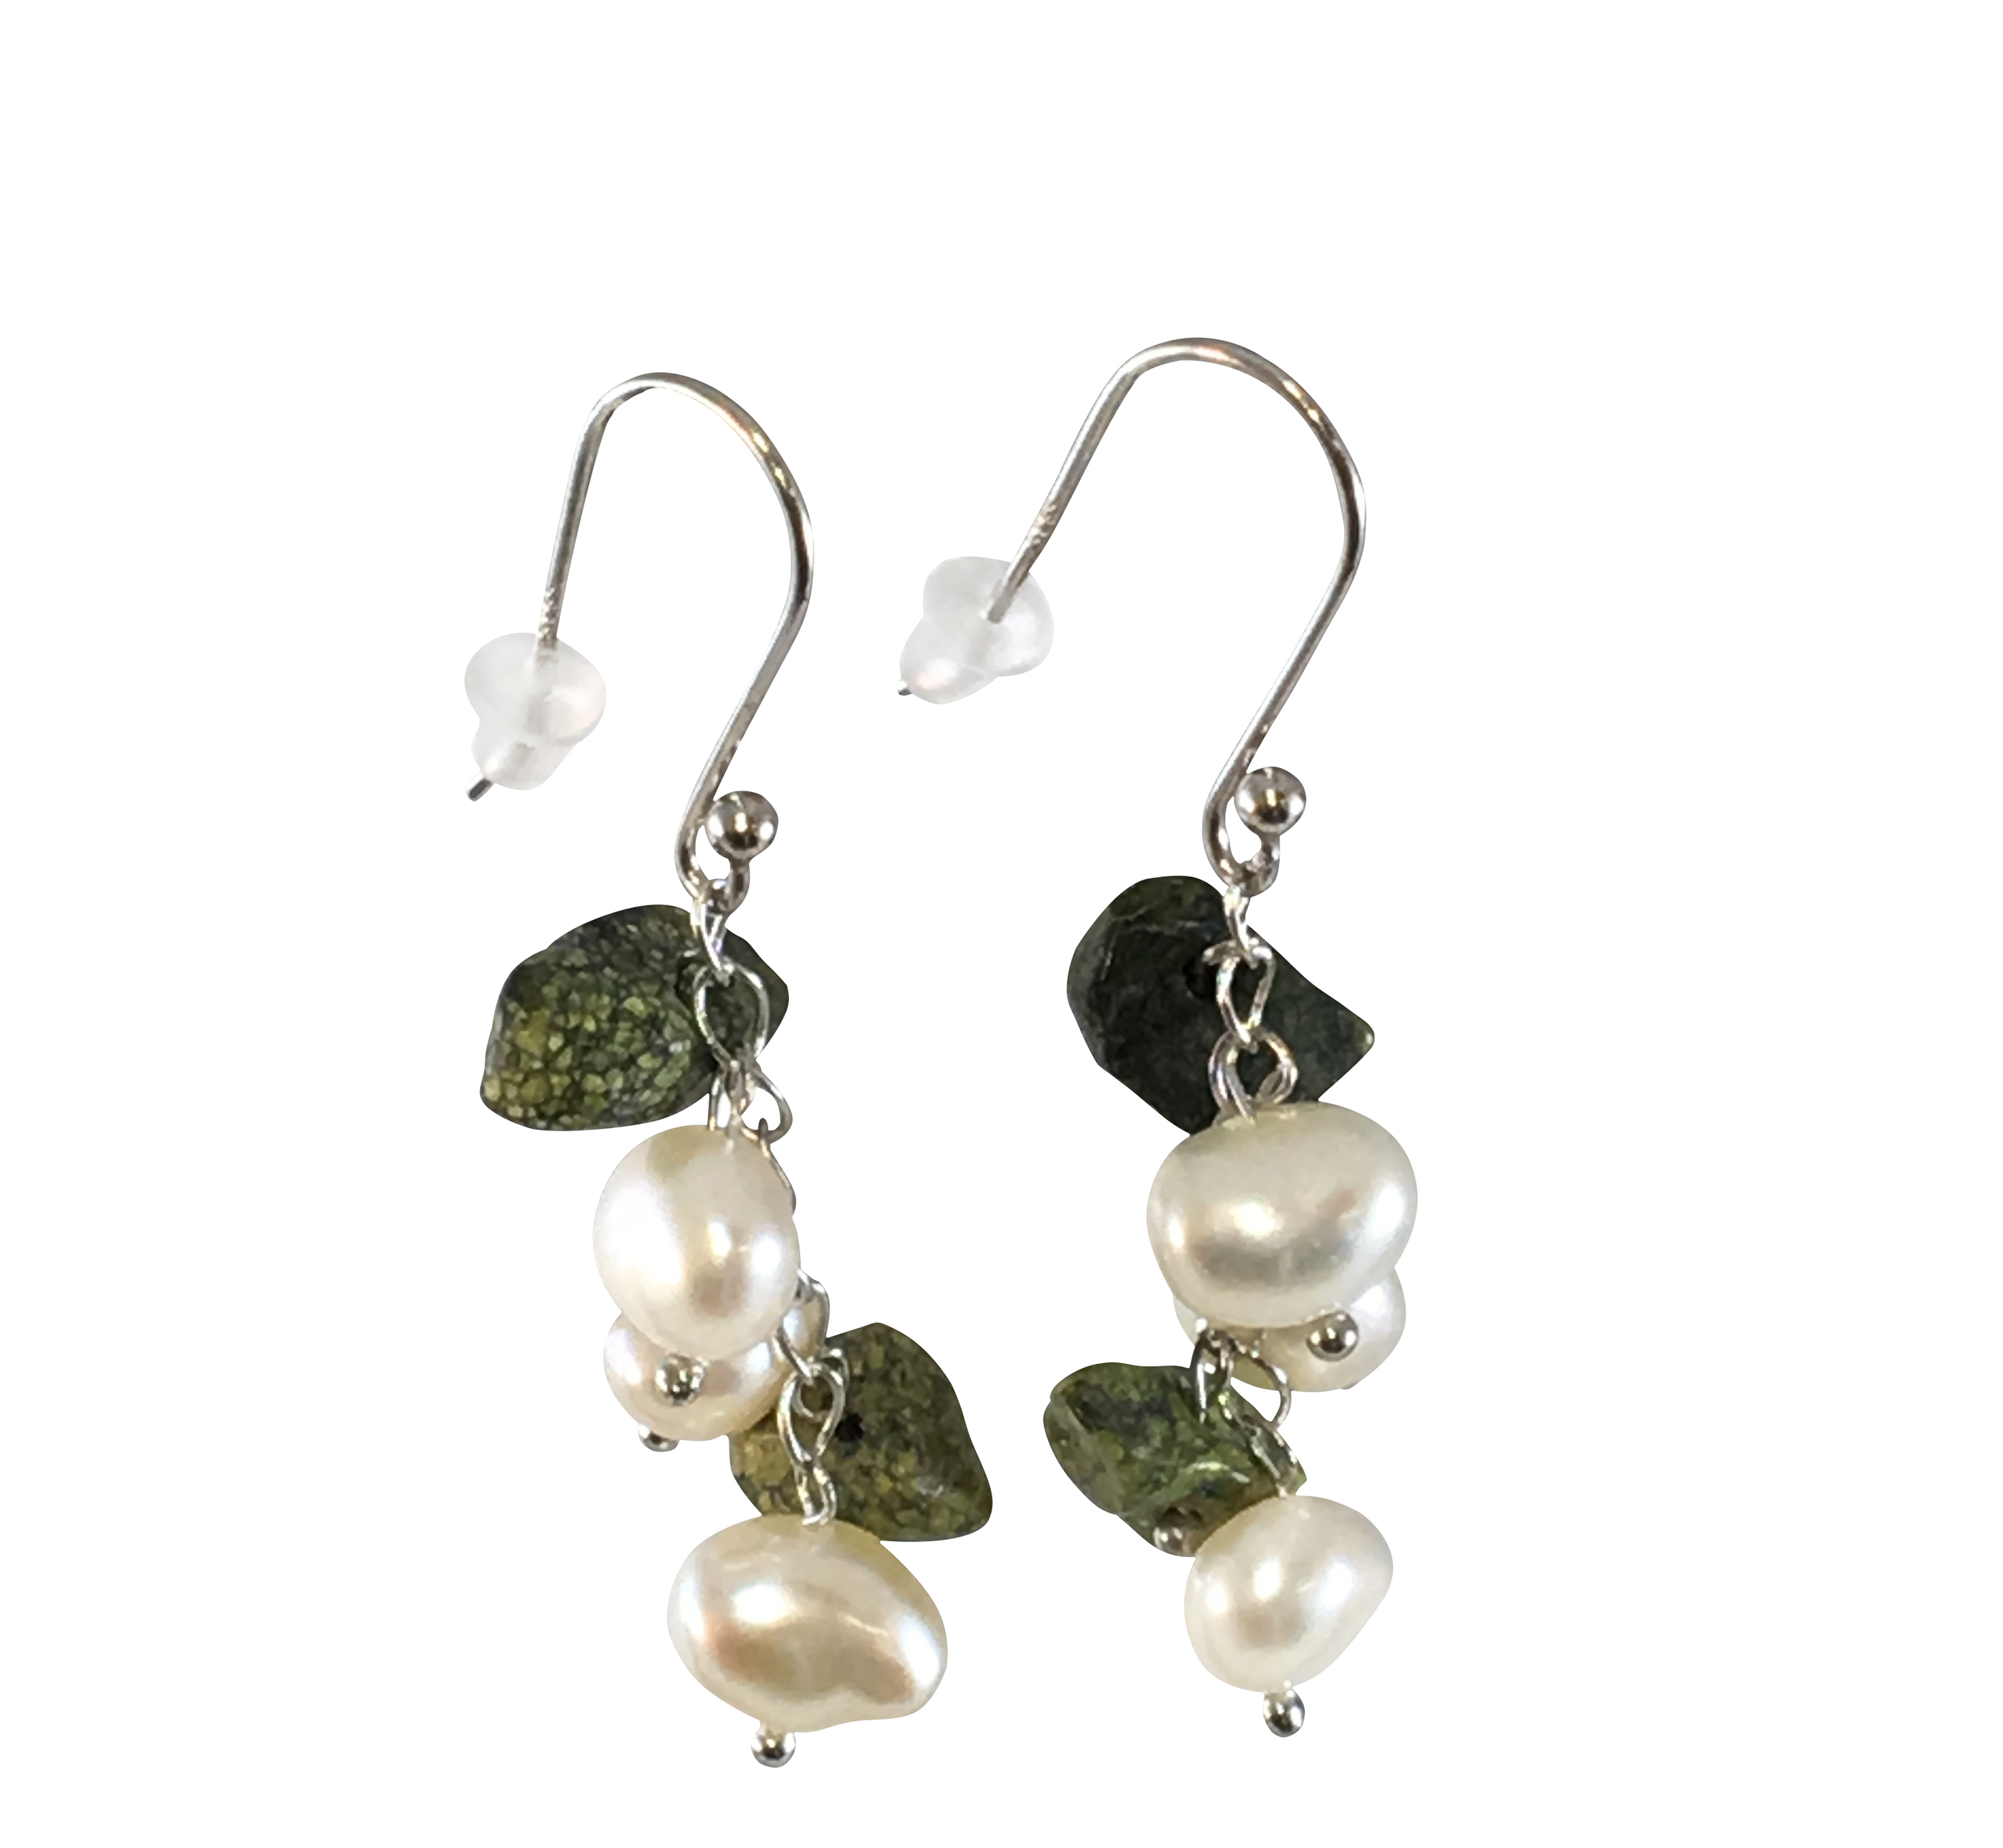 5.5-8.5mm A Quality Freshwater Cultured Pearl Earring Pair in White